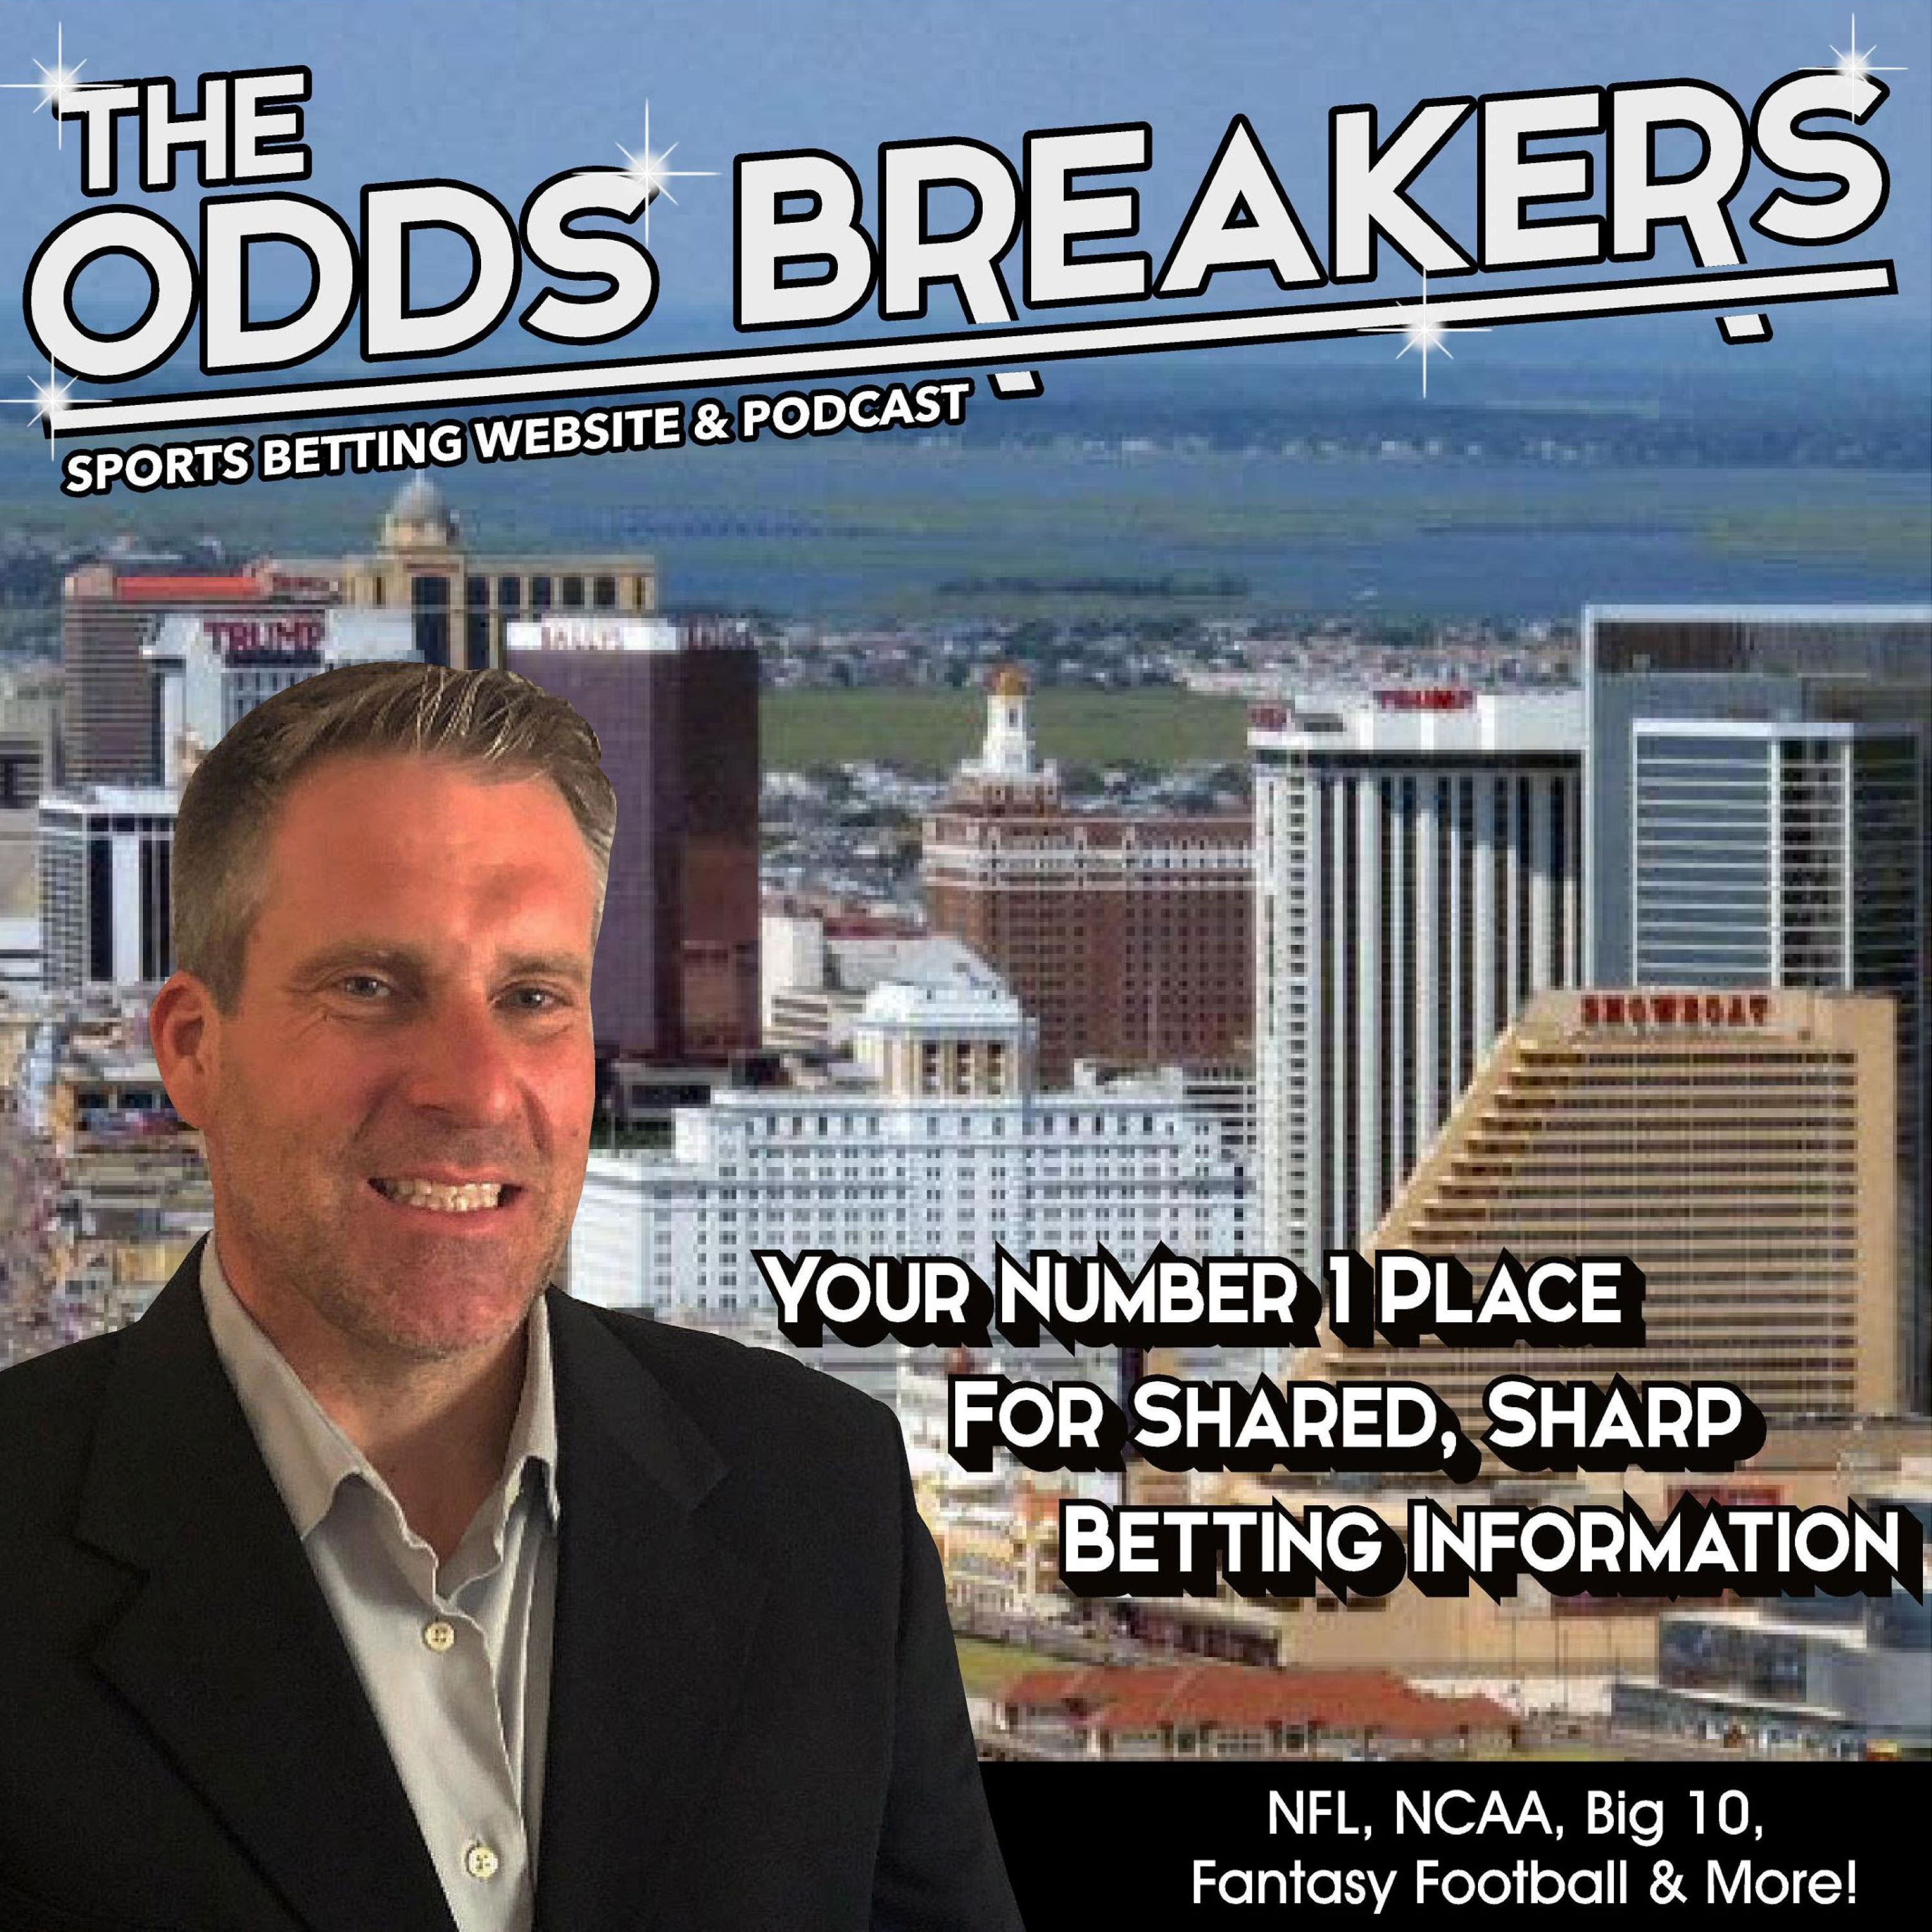 Docs sports betting reviews where can i bet money on football games